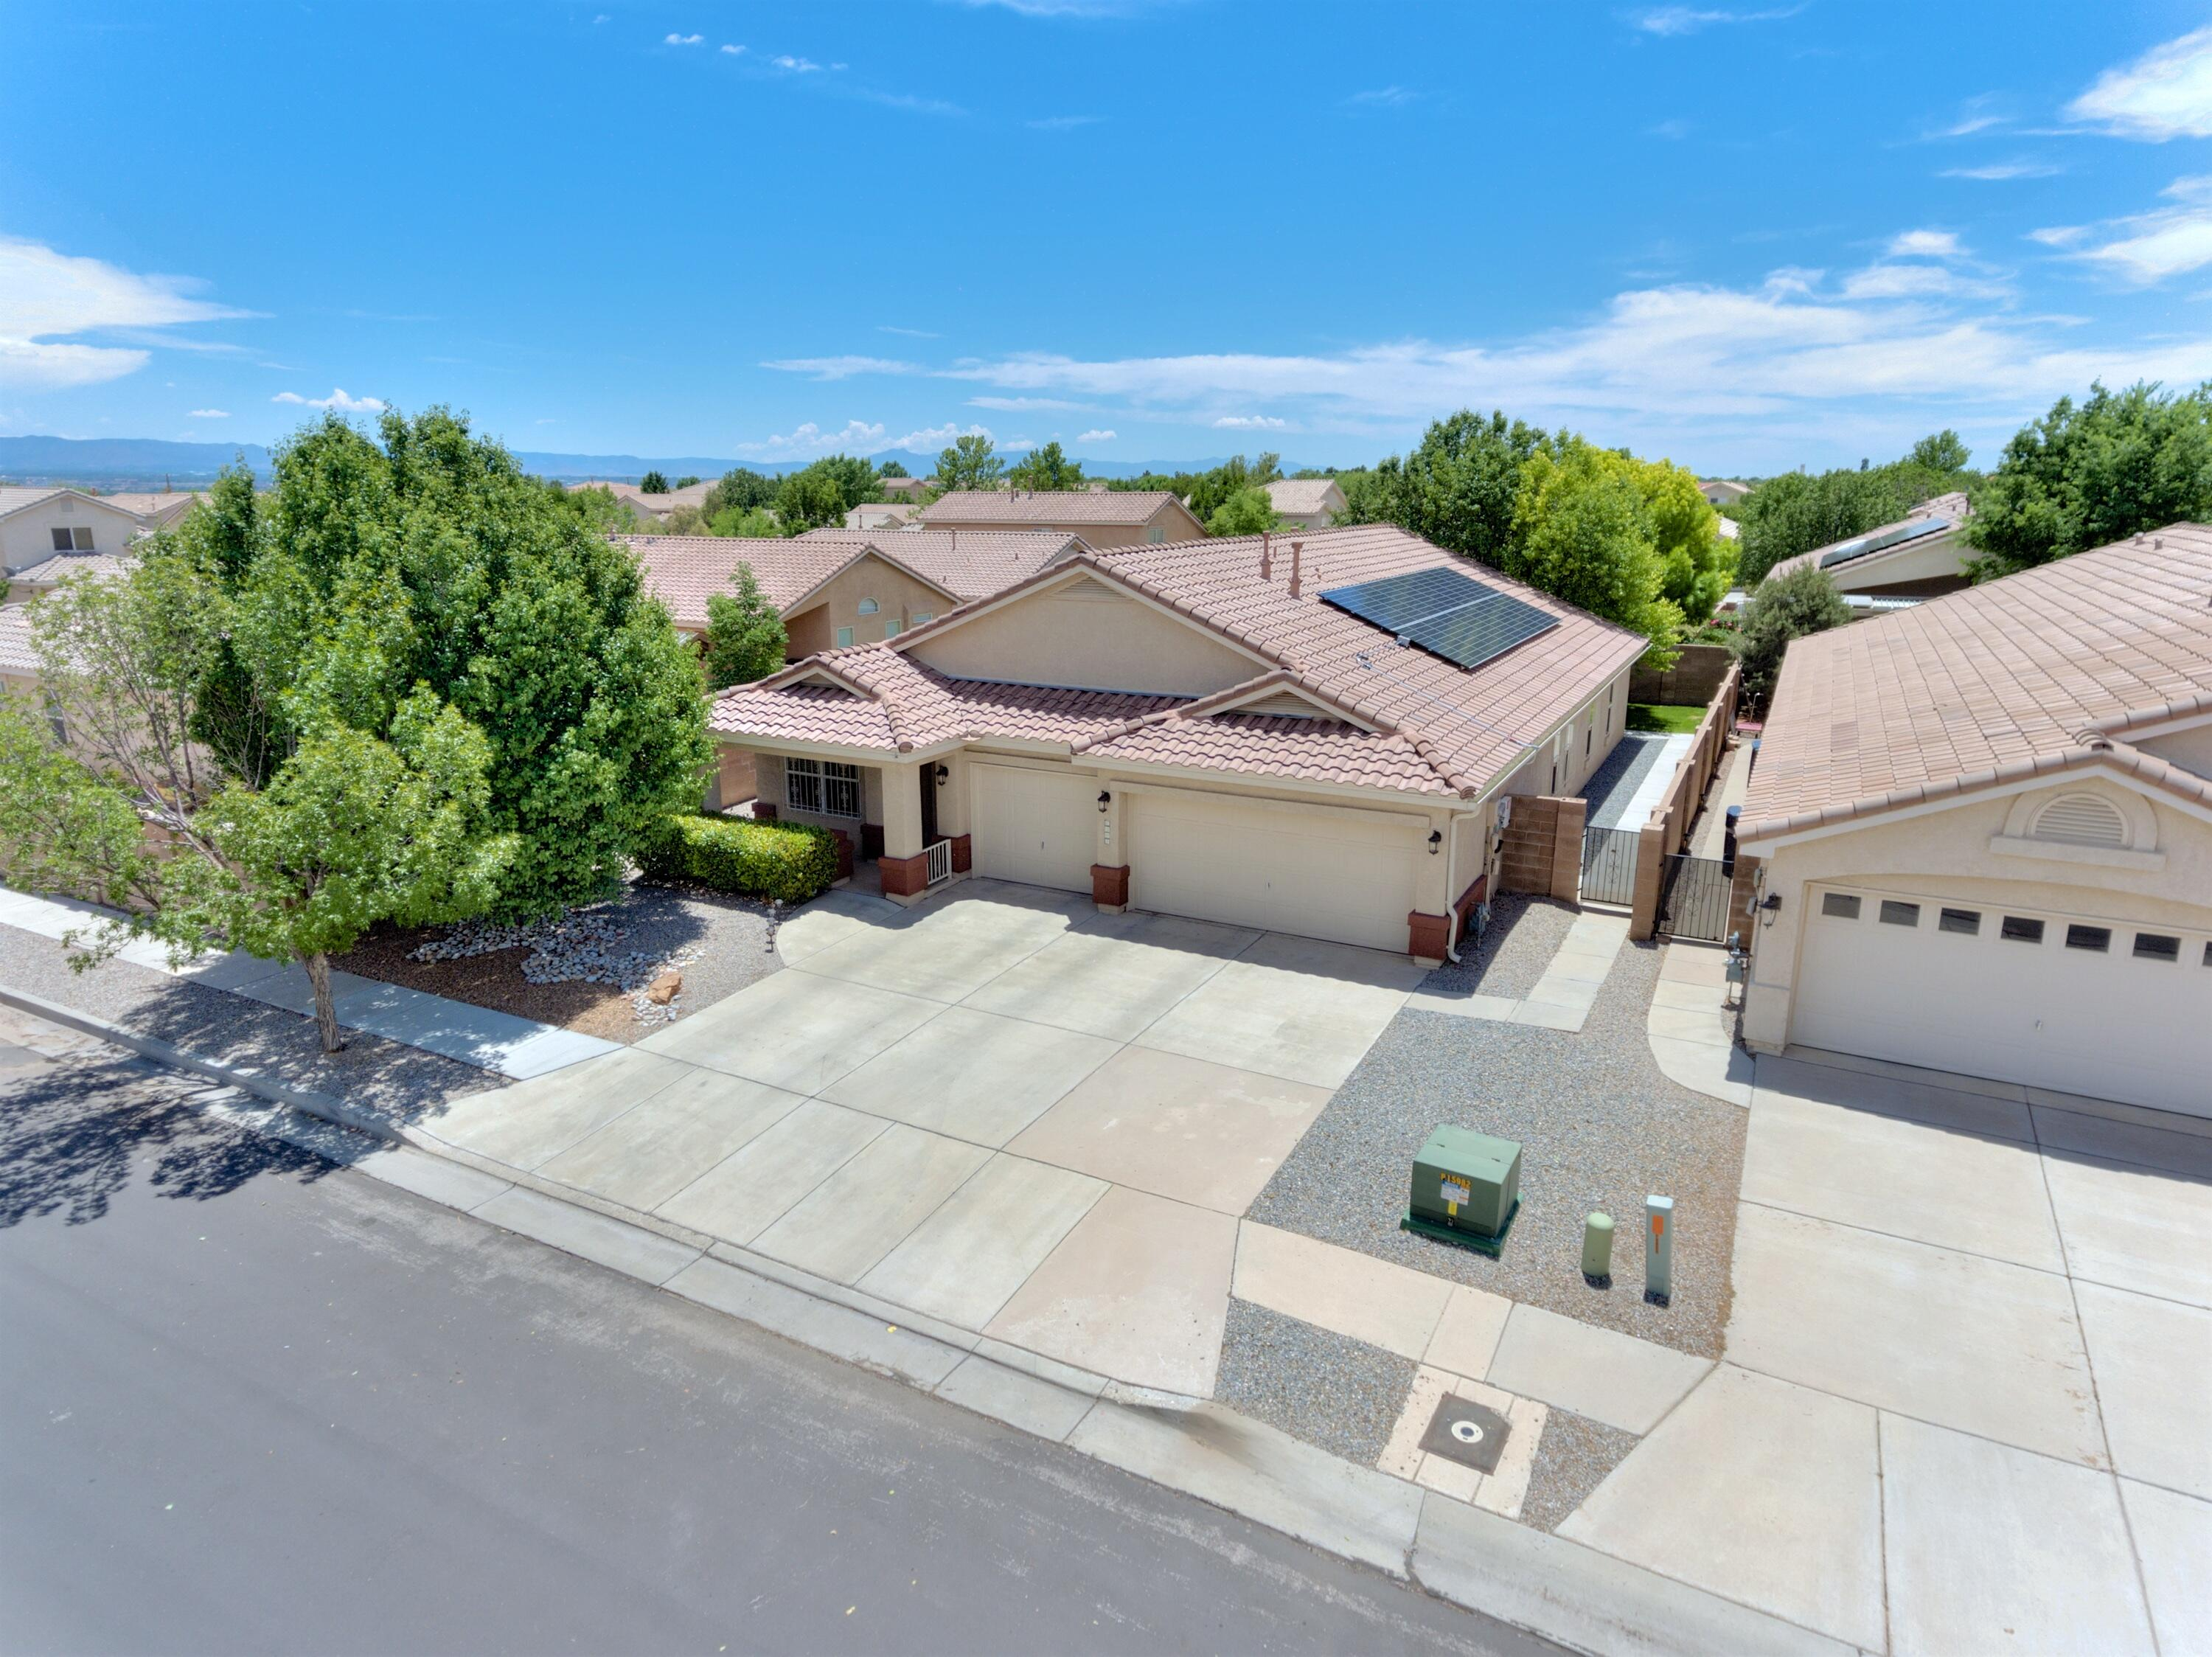 Beautiful single story home in the Story Rock neighborhood!  Pride of ownership radiates throughout the home with many updates.  The quaint country kitchen with storage galore, stainless steel appliances, BIG island, farm sink and HUGE pantry will make you say, ''Wow!''  The relaxing and nicely landscaped backyard with patio, shade tree and grass allows for some much needed R & R.  Stay cool this summer with the refrigerated air that is powered by recently installed solar panels to help with electric costs!  Enjoy the extra storage with the 3rd garage bay and attic space.  Located within the Volcano Vista school district and conveniently located for easy highway access and shopping.  The home yearns to please!  Don't delay, view today!